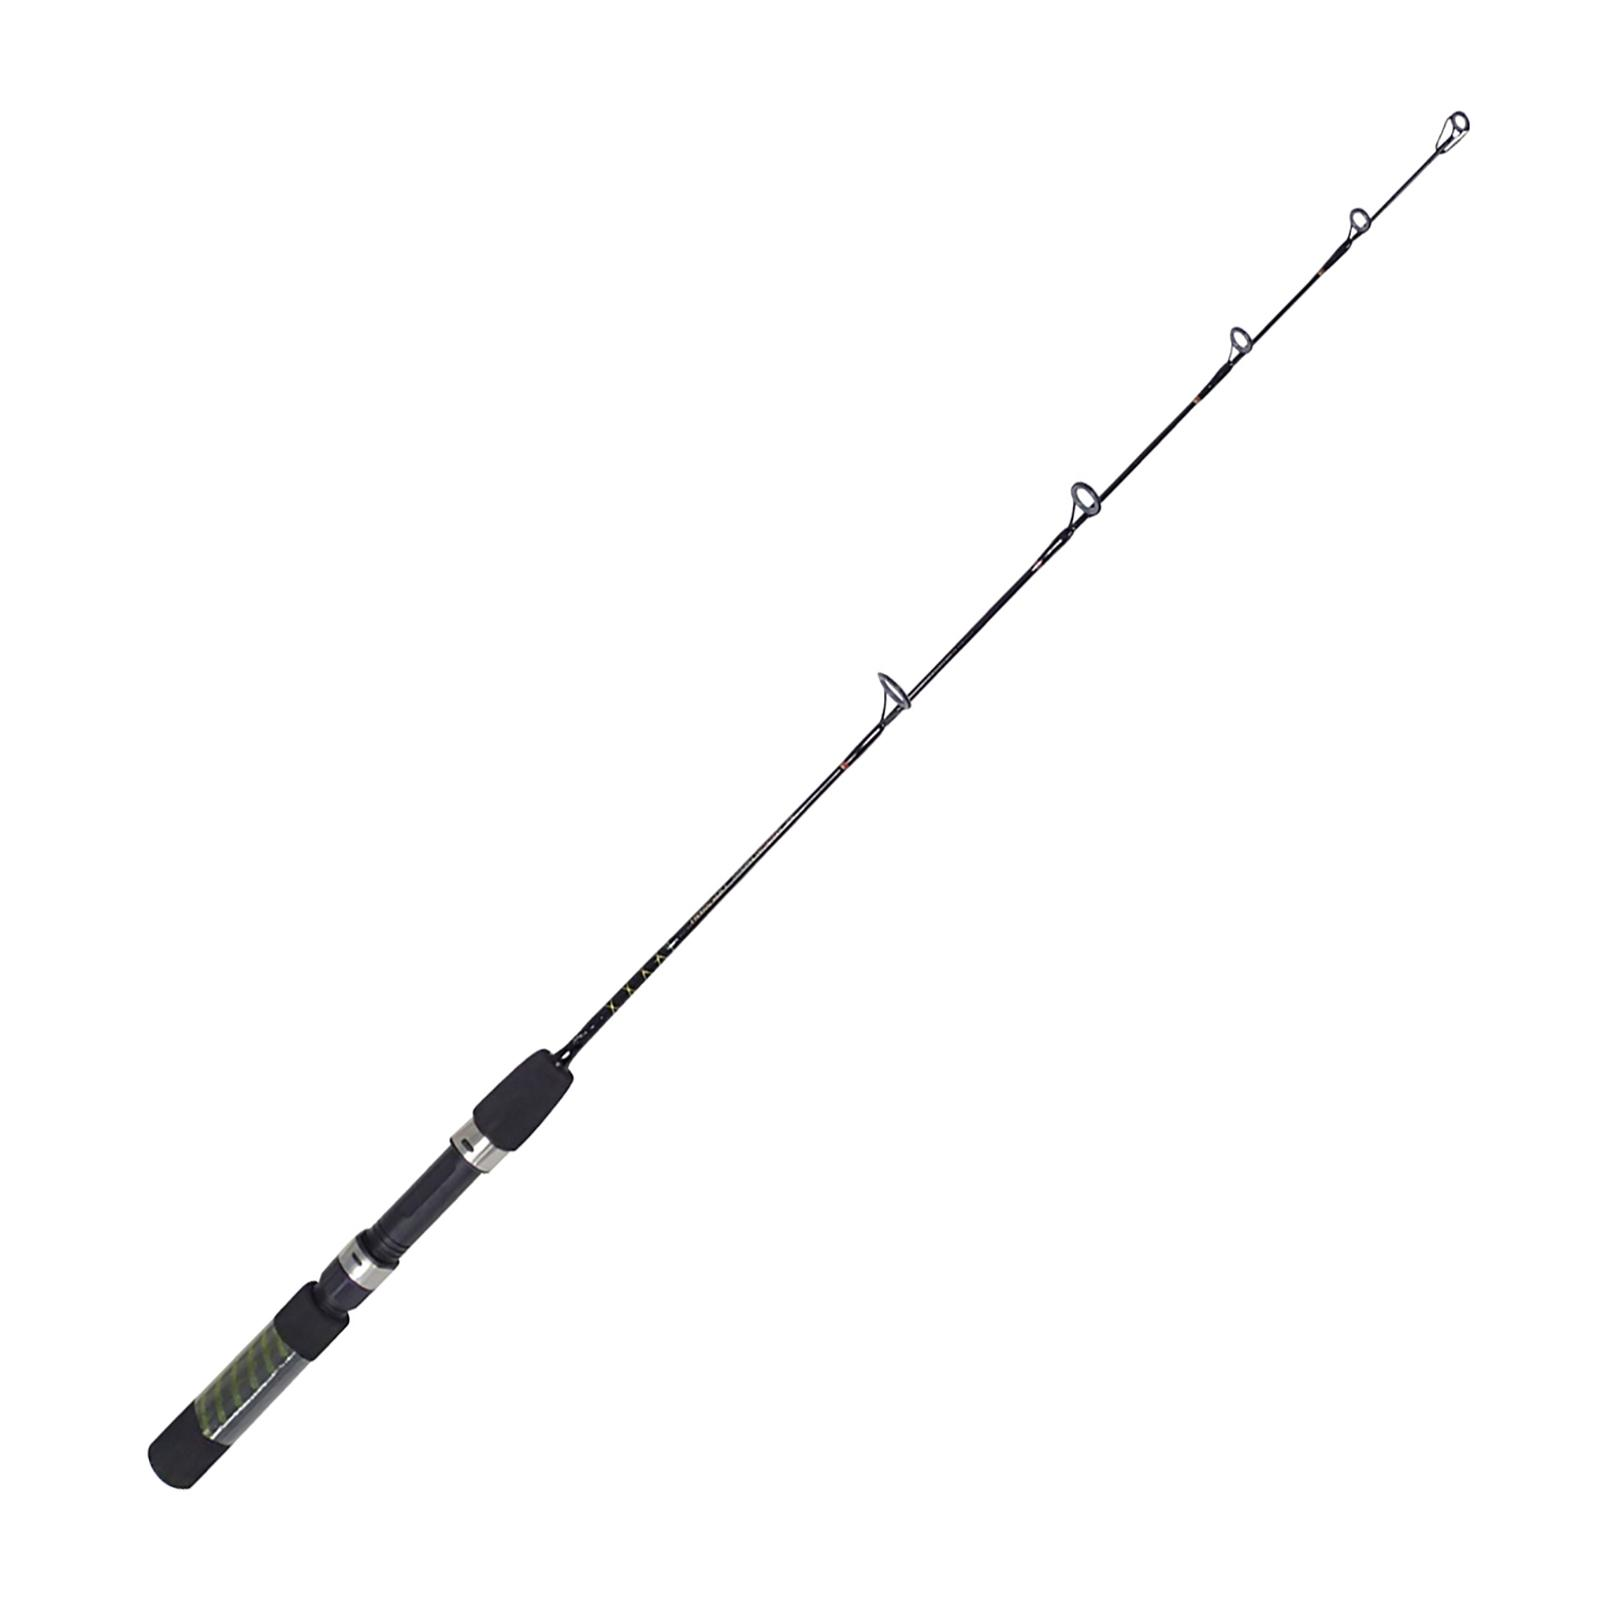 HT Enterprises Laker Pro Ice Rod